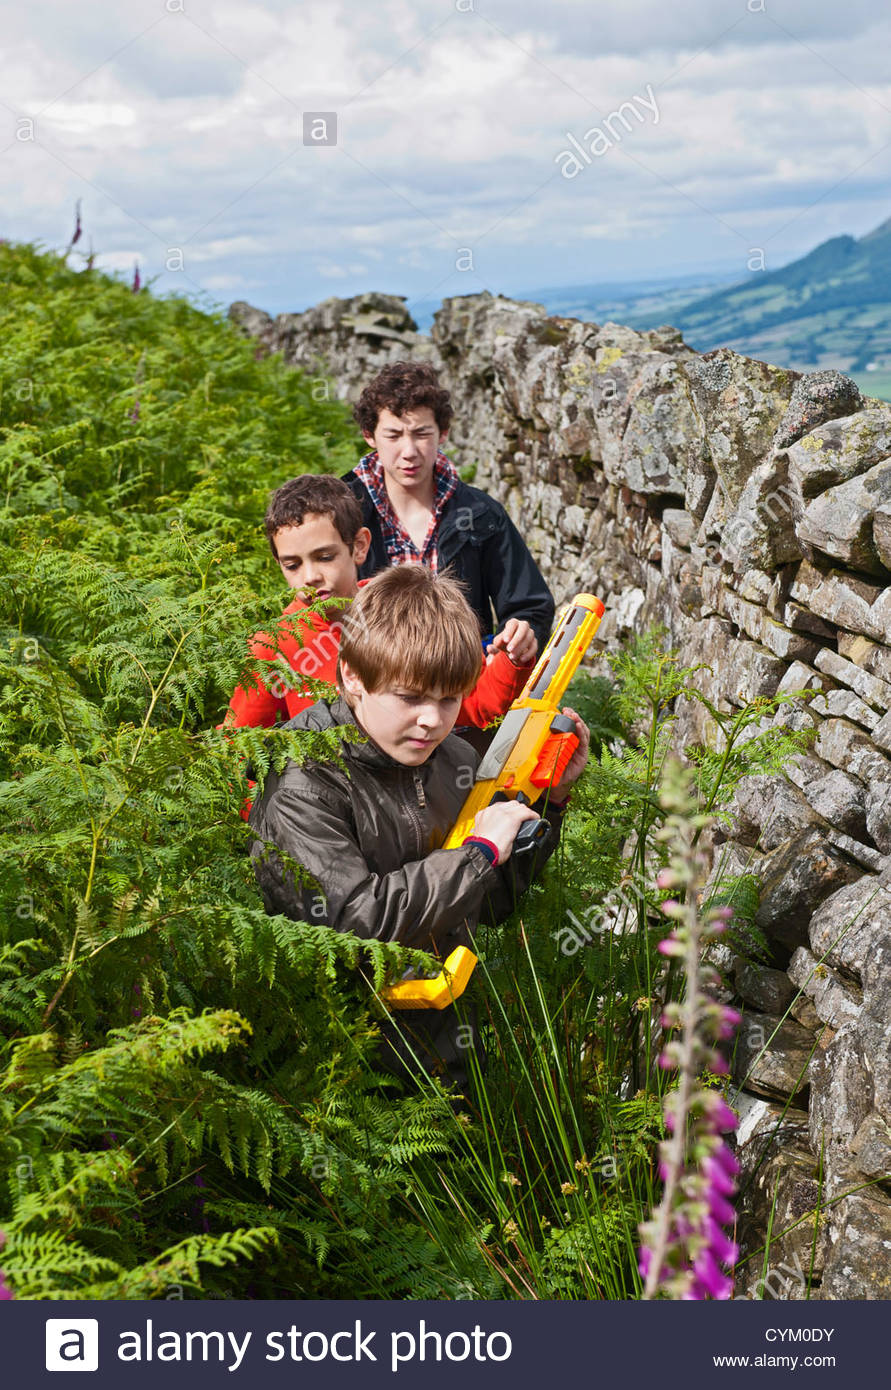 Boys playing with squirt guns outdoors - Stock Image